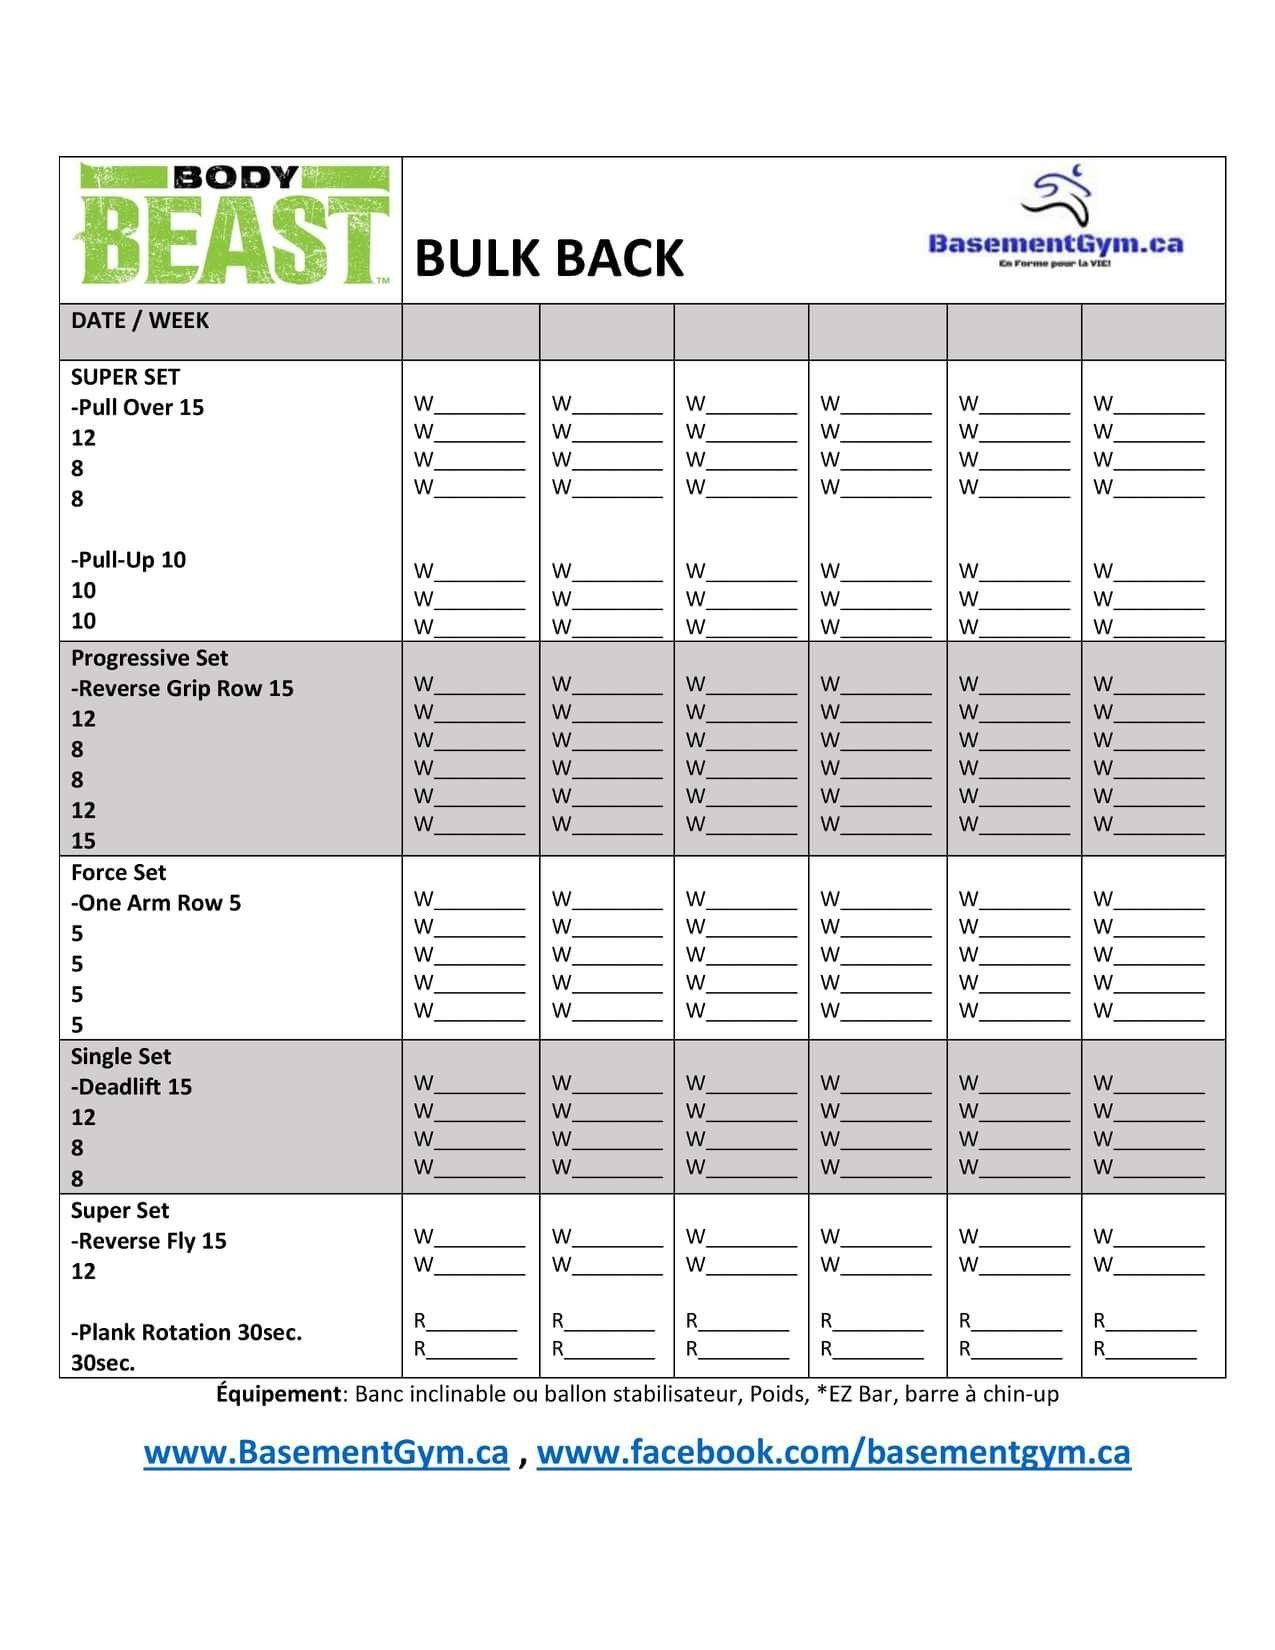 Body Beast Bulk Back Worksheet